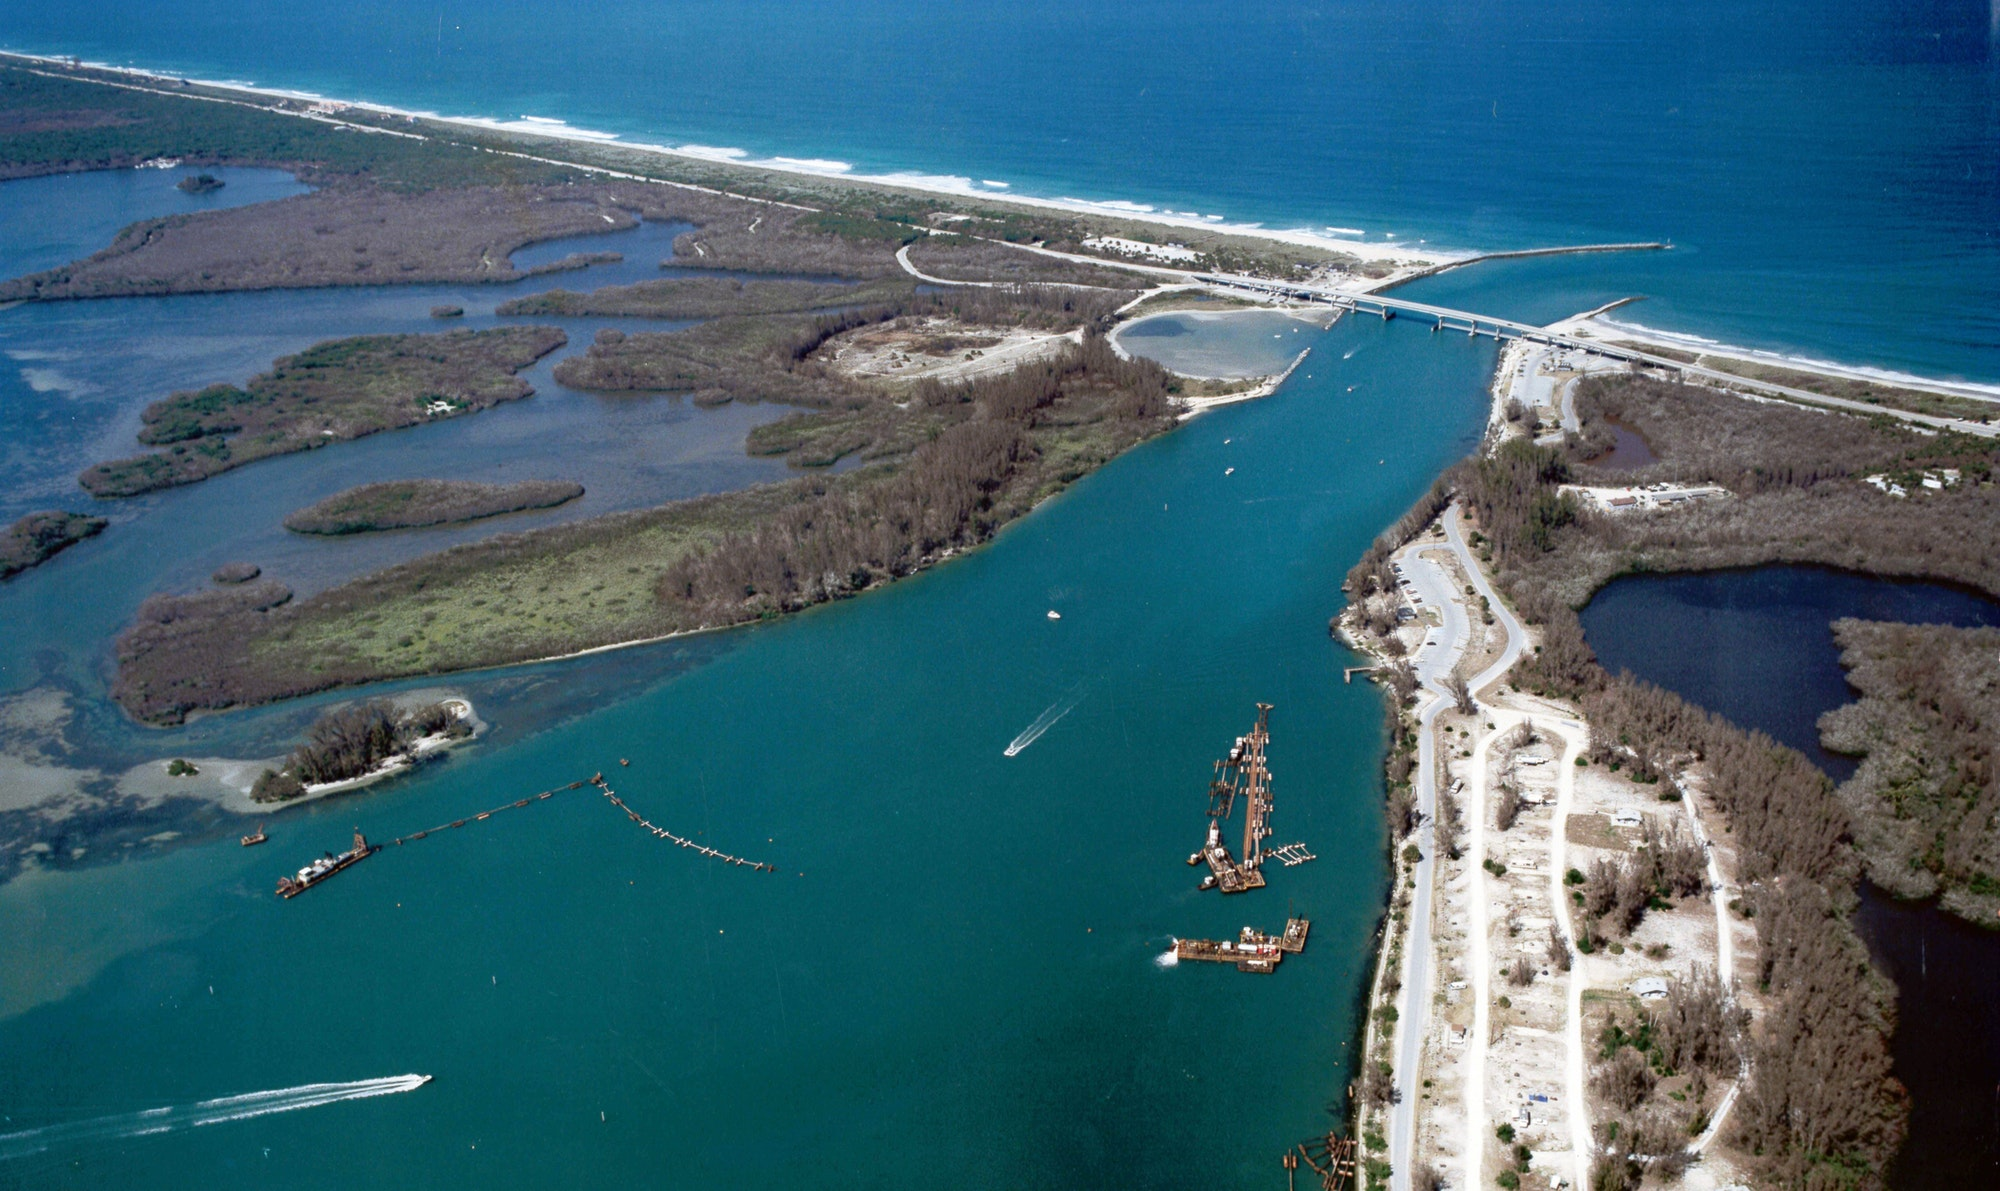 aerial view of inlet looking East with dredging equipment in channel